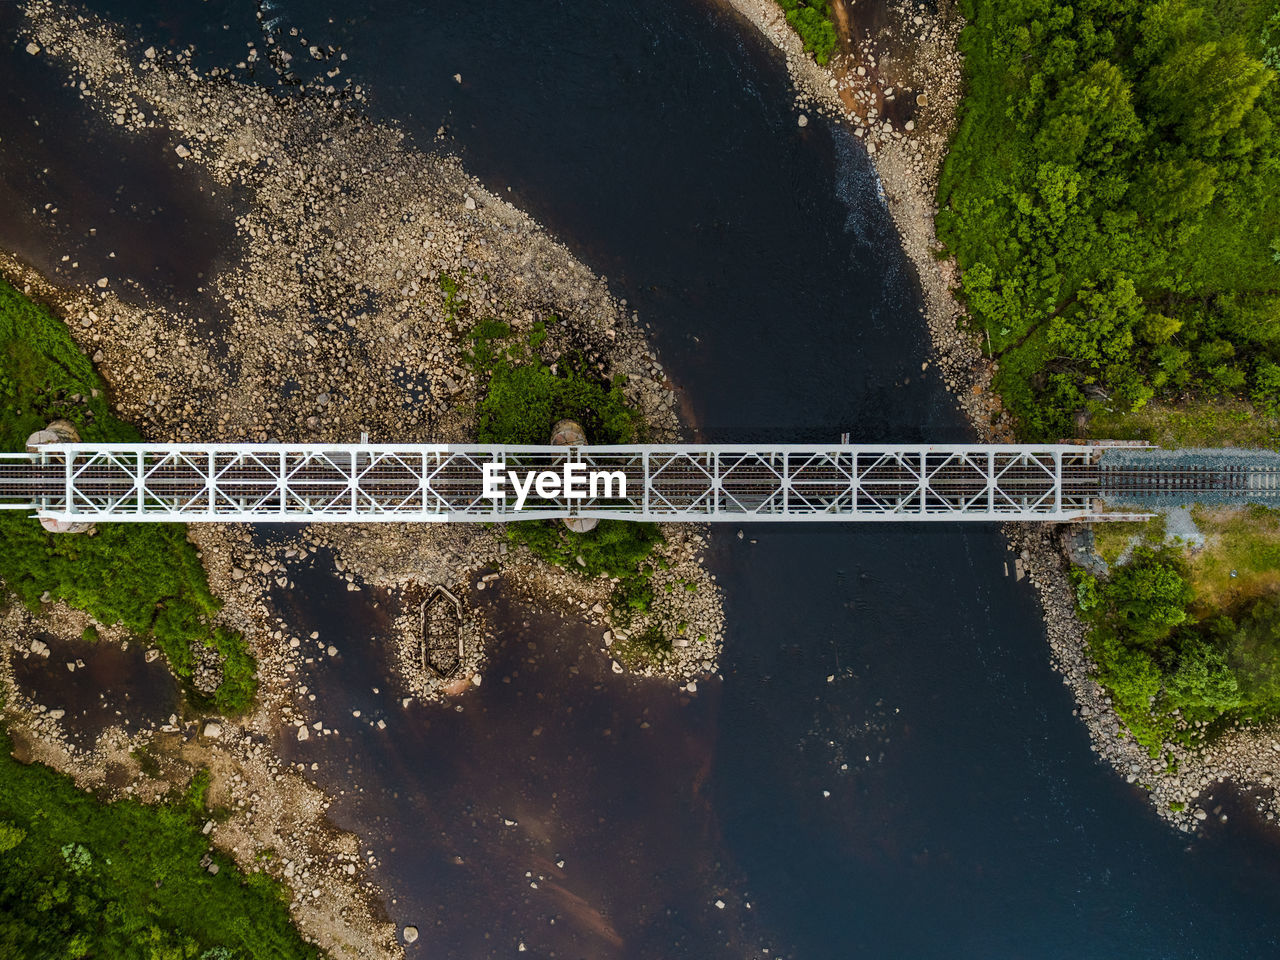 no people, nature, day, water, connection, transportation, outdoors, plant, high angle view, built structure, bridge, architecture, bridge - man made structure, road, sunlight, tree, metal, motion, land